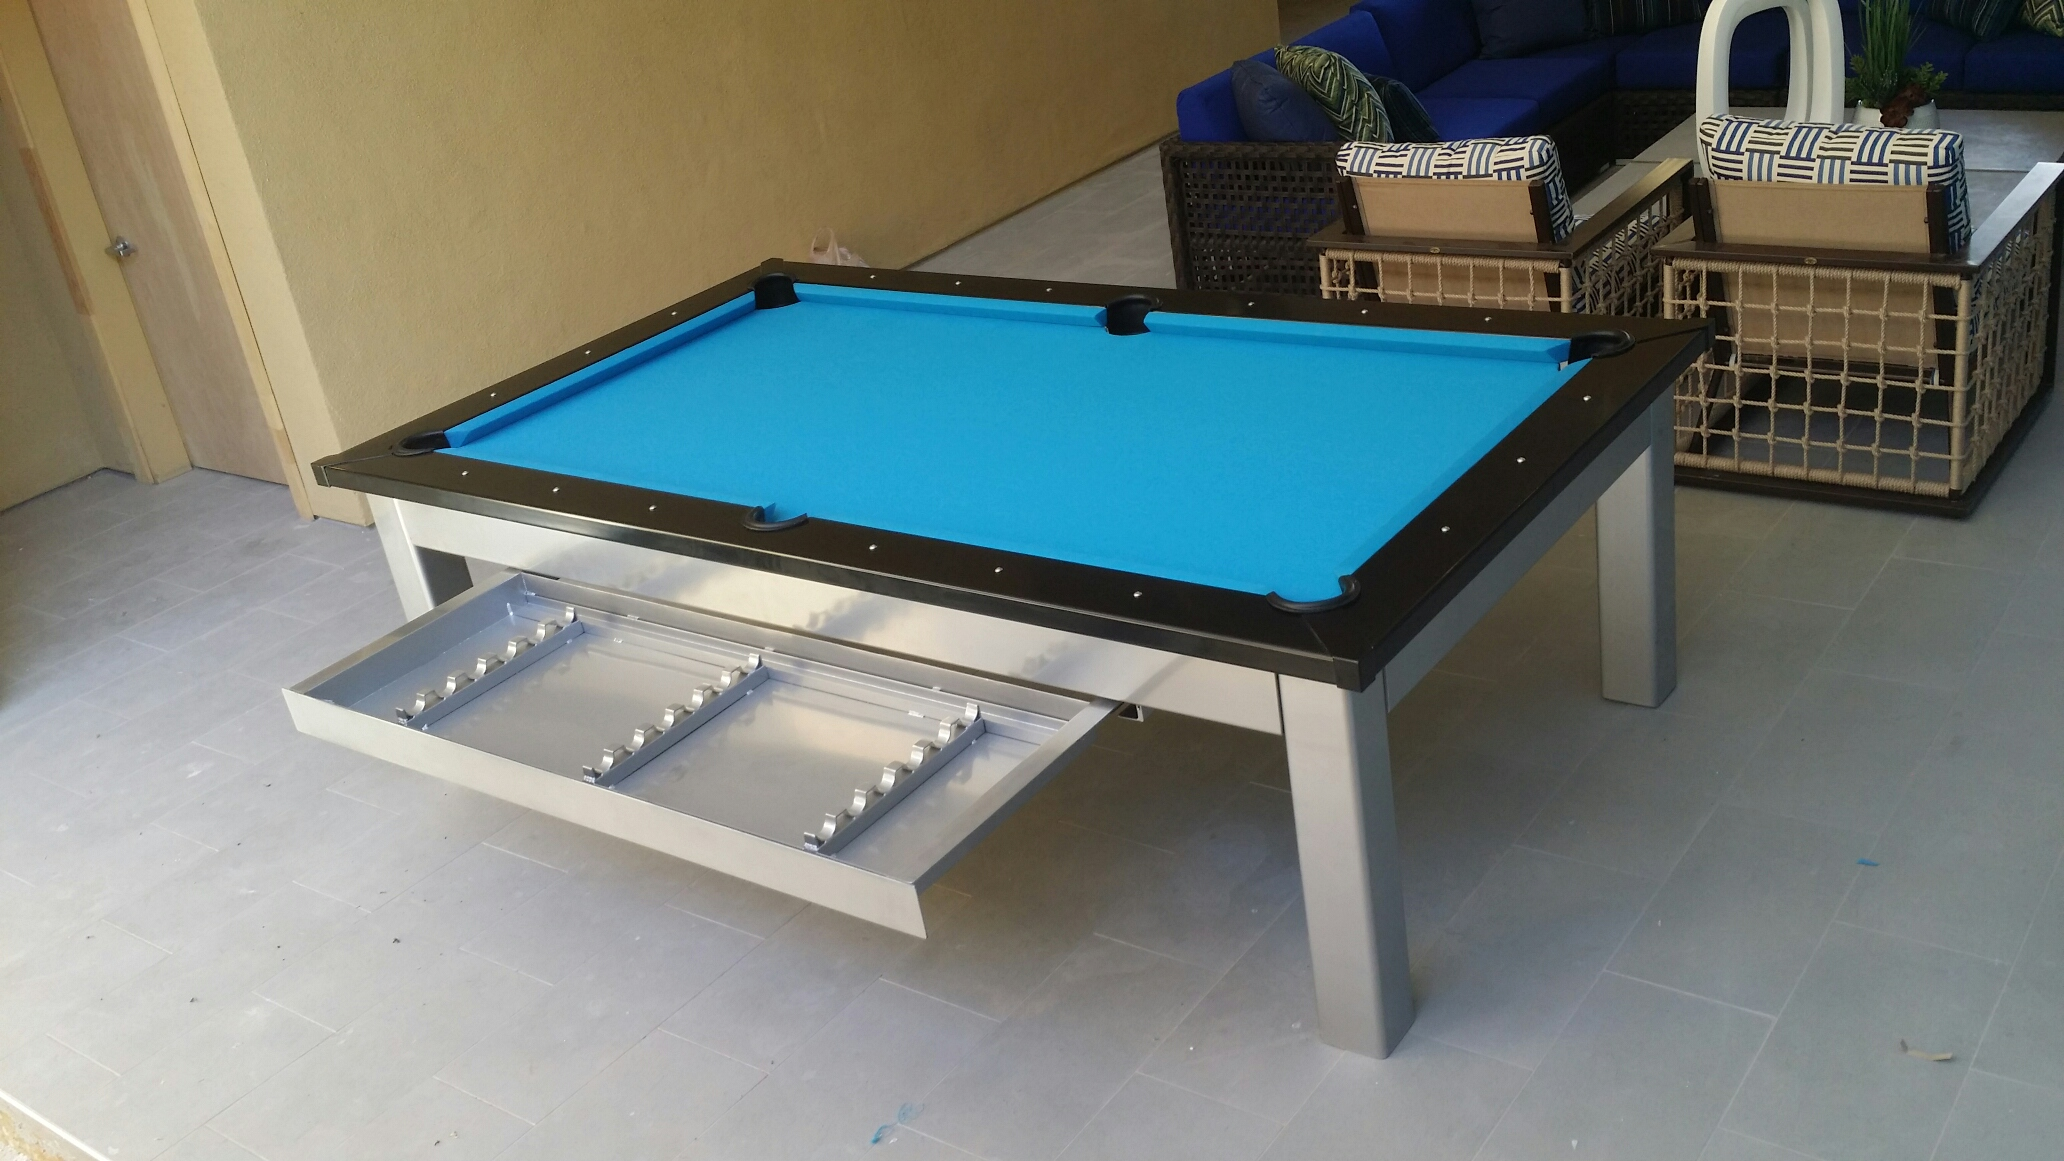 The Outdoor Designer Pool Table Diamondback Billiards